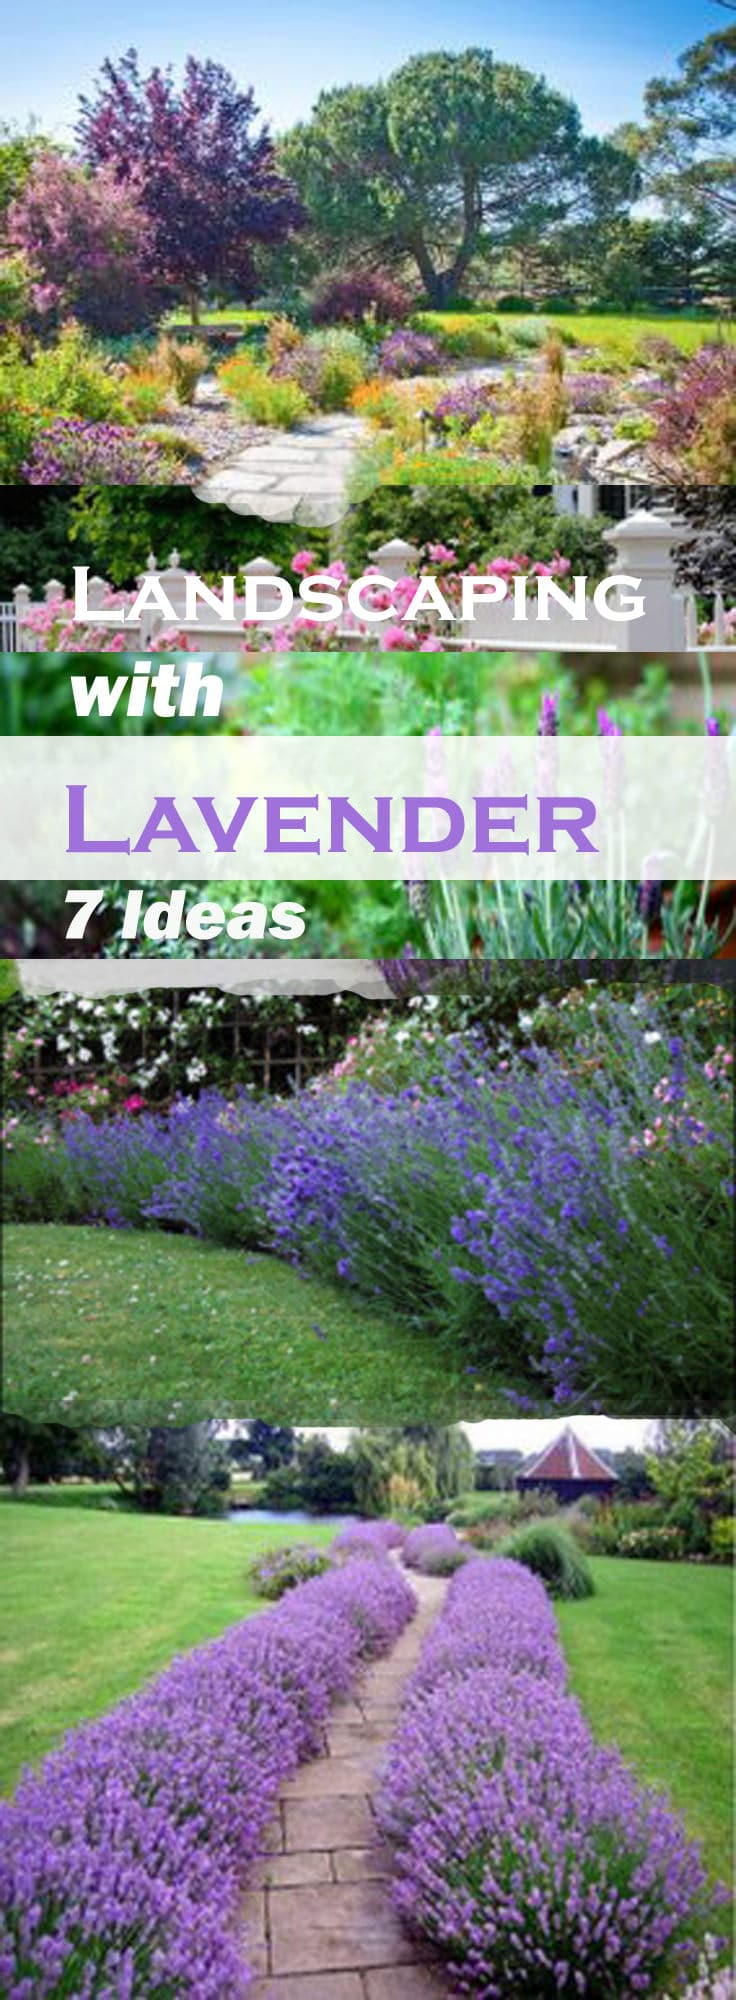 Landscaping With Lavender Is Easy And Of Low Maintenance As This Herb Available In So